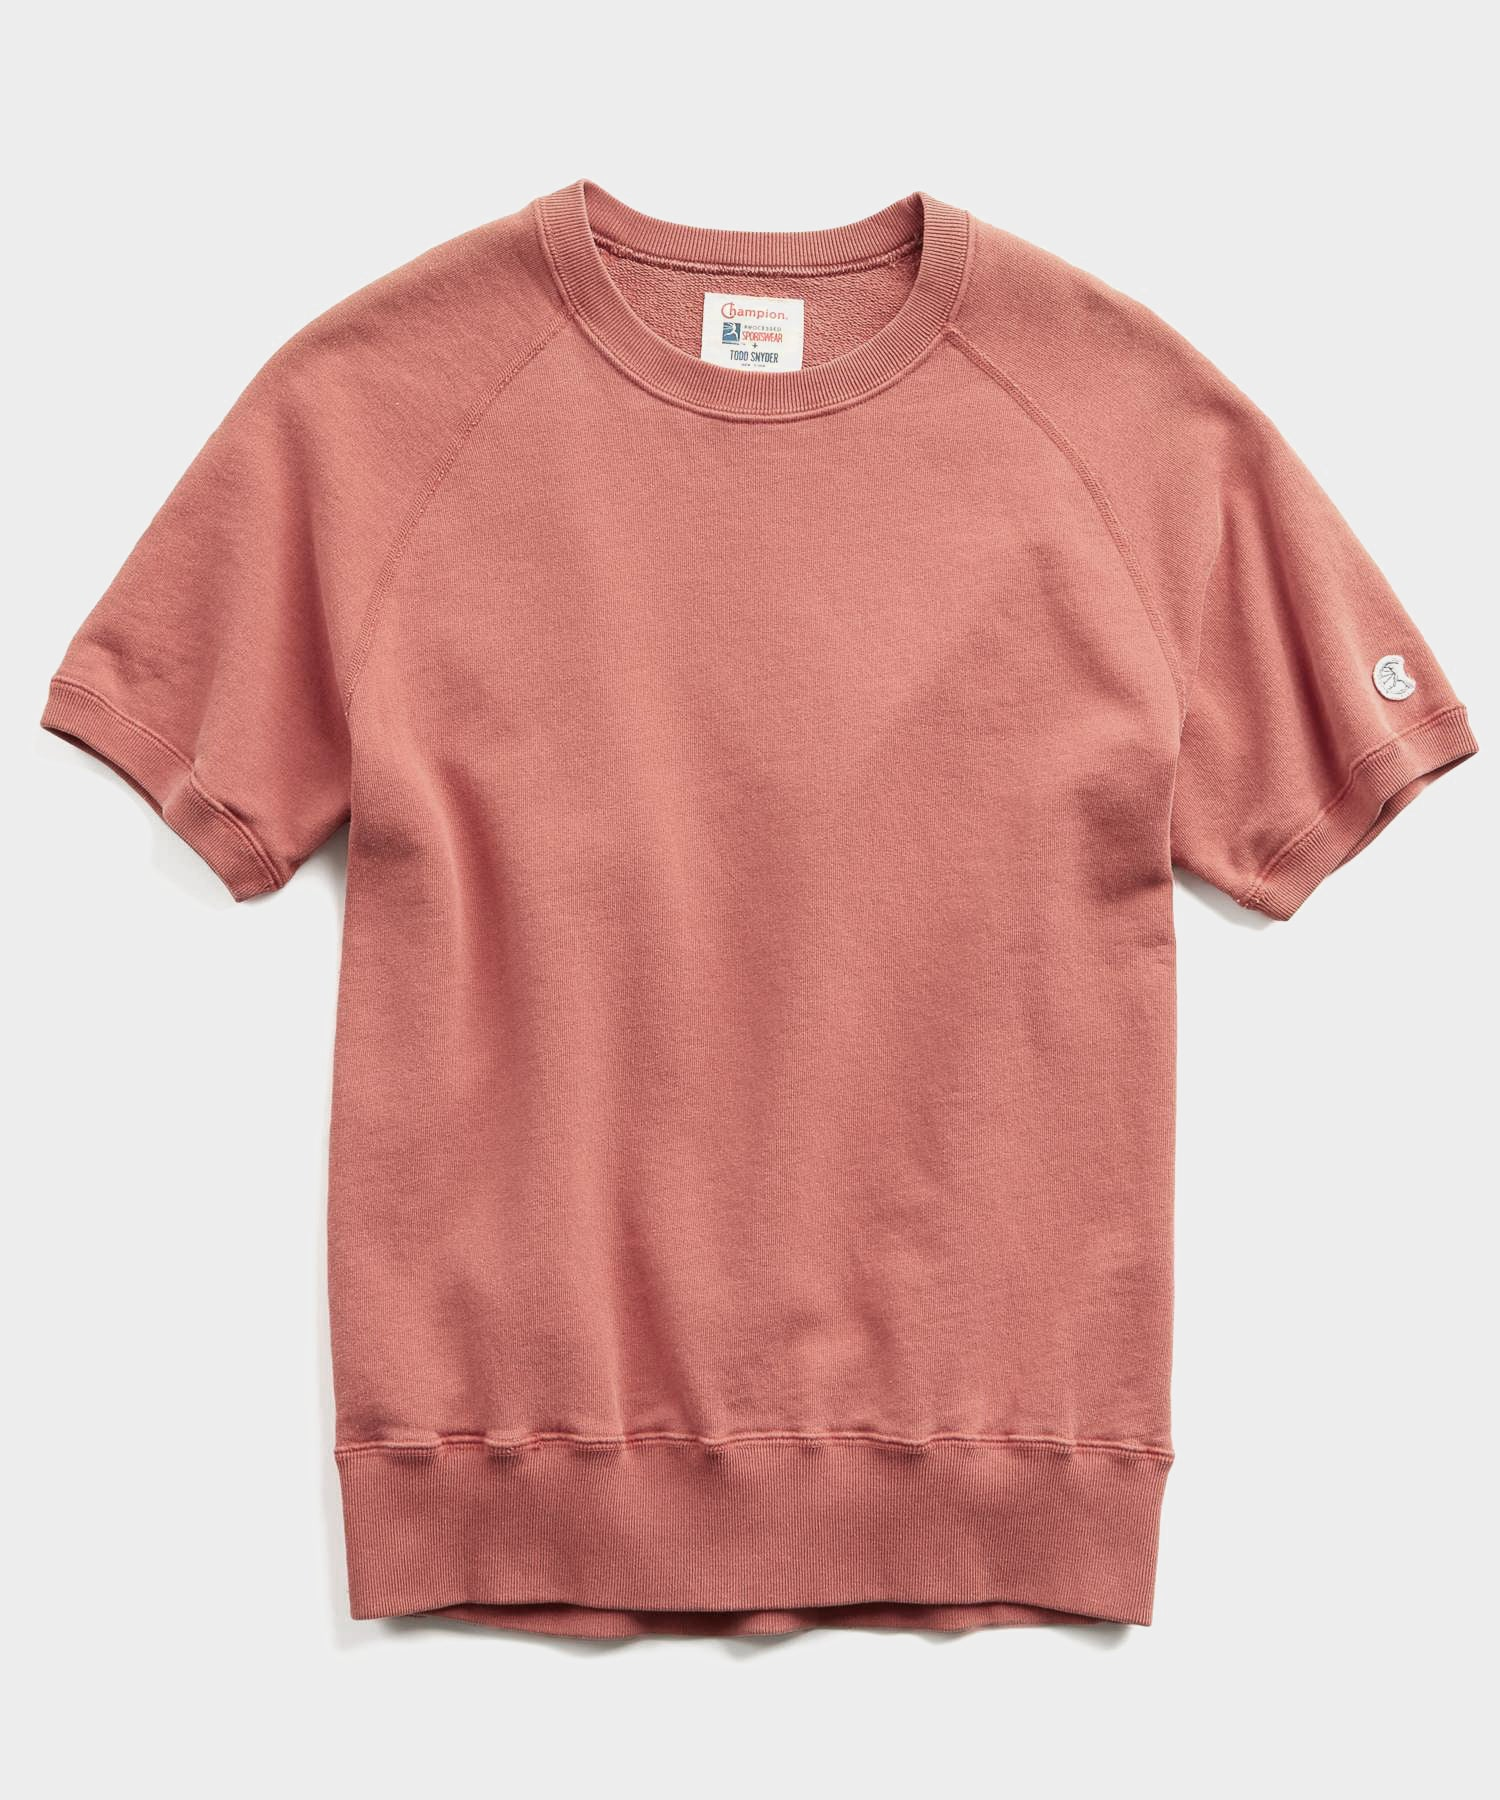 Lightweight Short Sleeve Sweatshirt in Rosewine